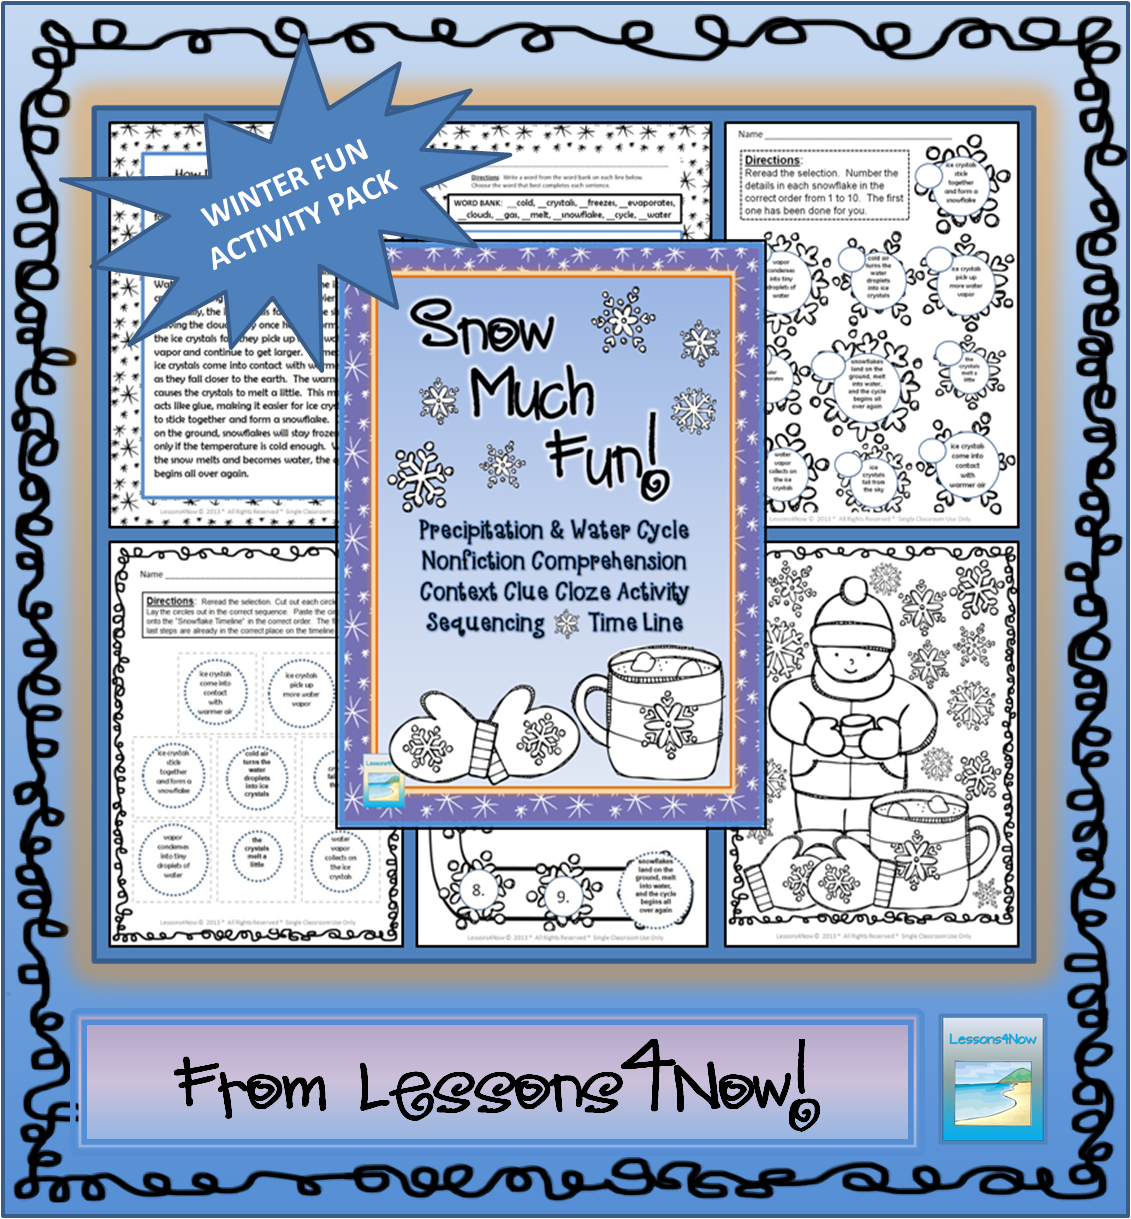 Snow Much Fun Winter Activity Packet